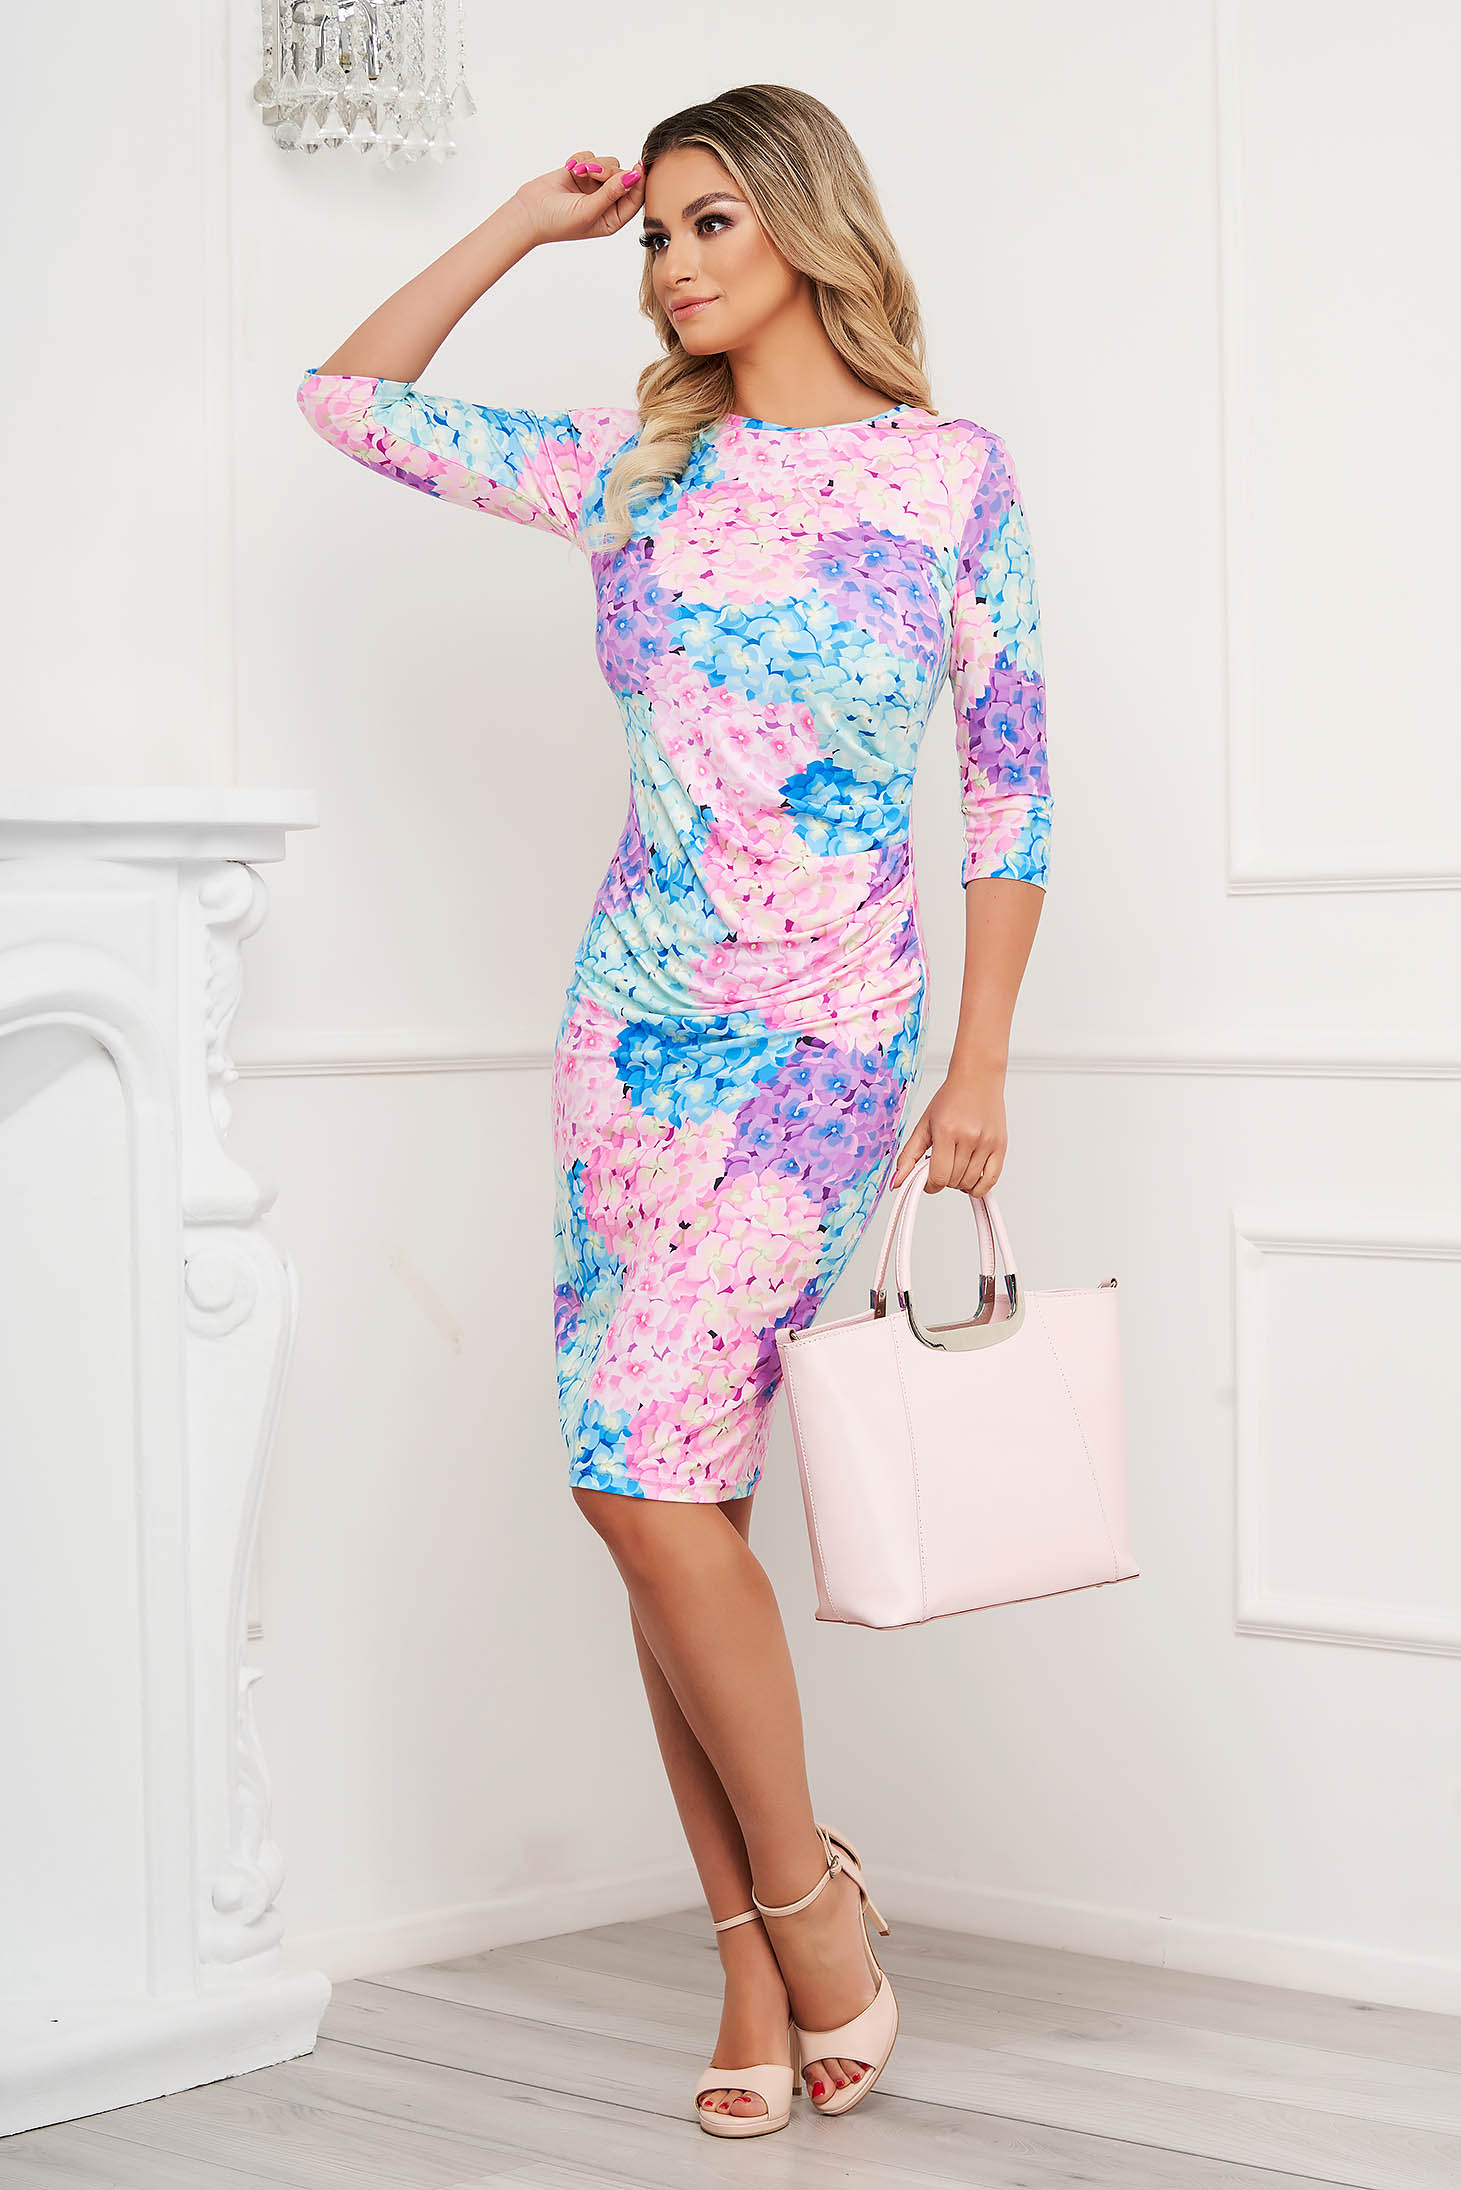 StarShinerS dress midi pencil with graphic details from elastic and fine fabric